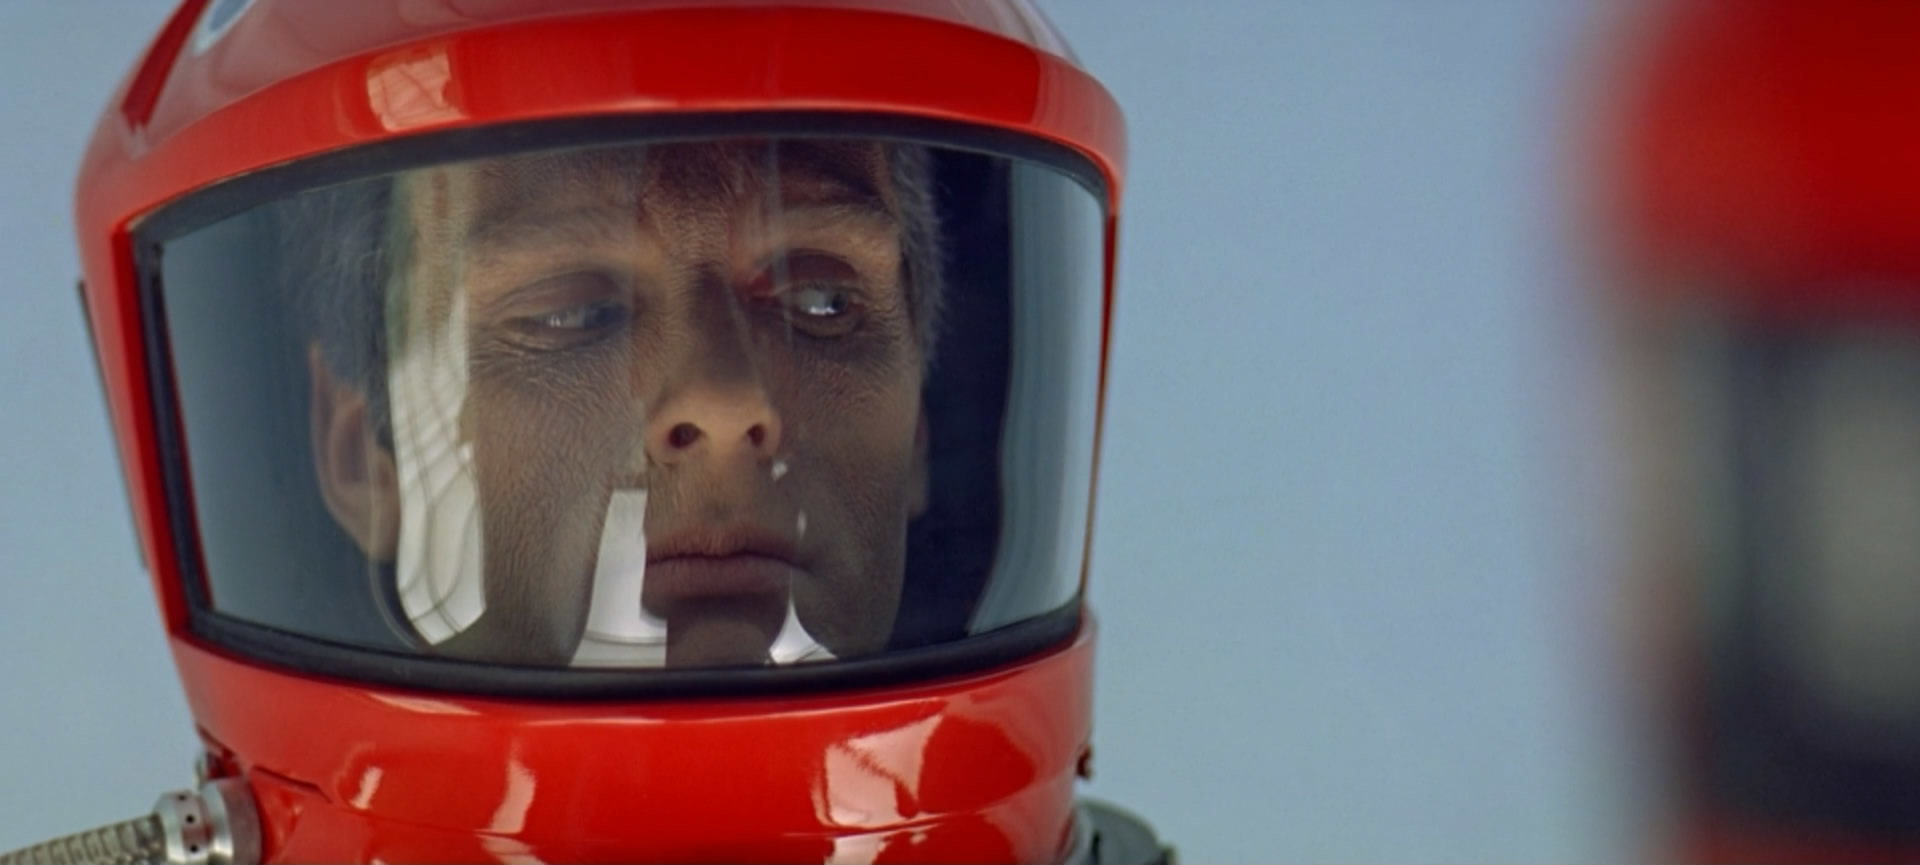 Movies 2001 Space Odyssey